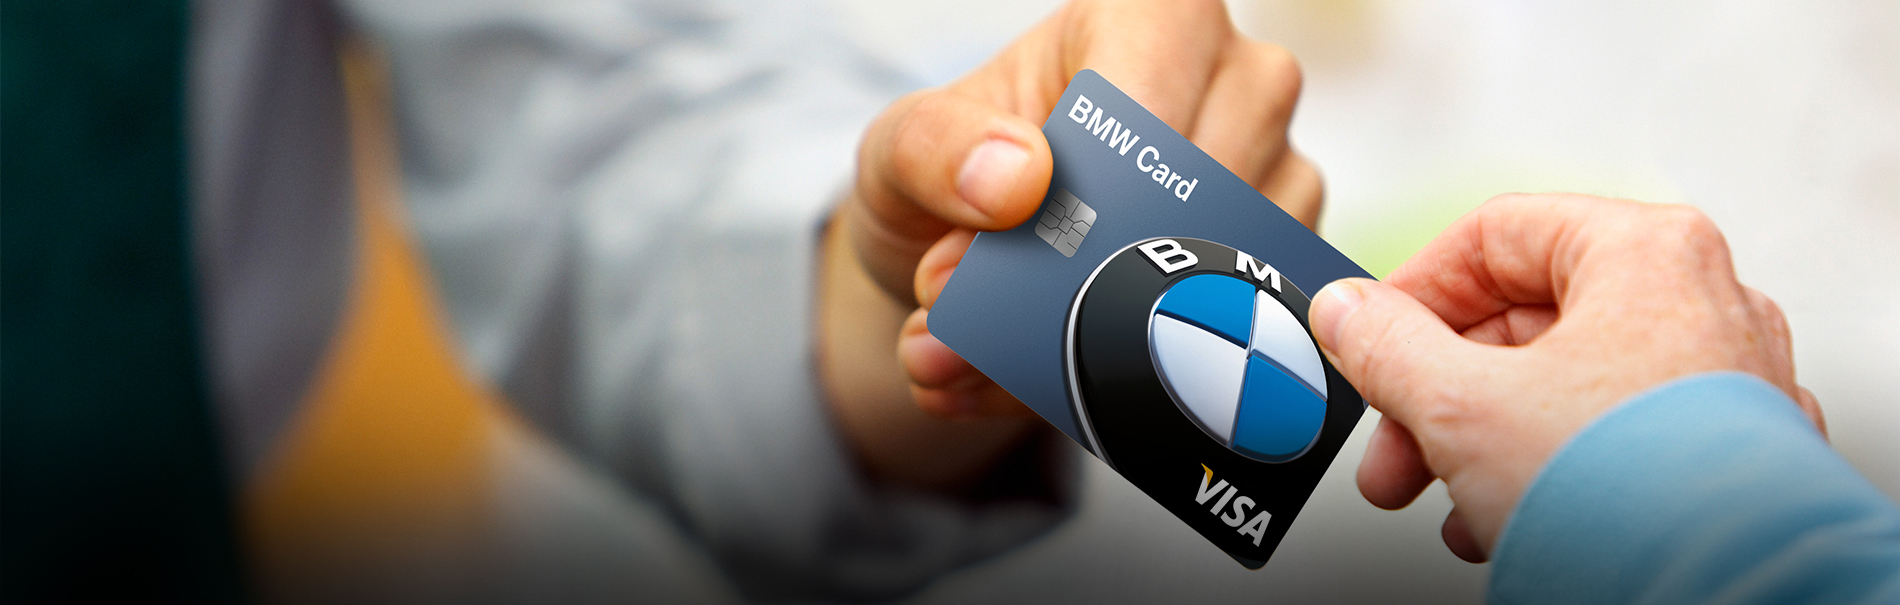 The BMW Family of Cards. Close-up of a Visa® BMW Credit Card being passed from a cashier in a green apron to the hand of a customer in a blue shirt.